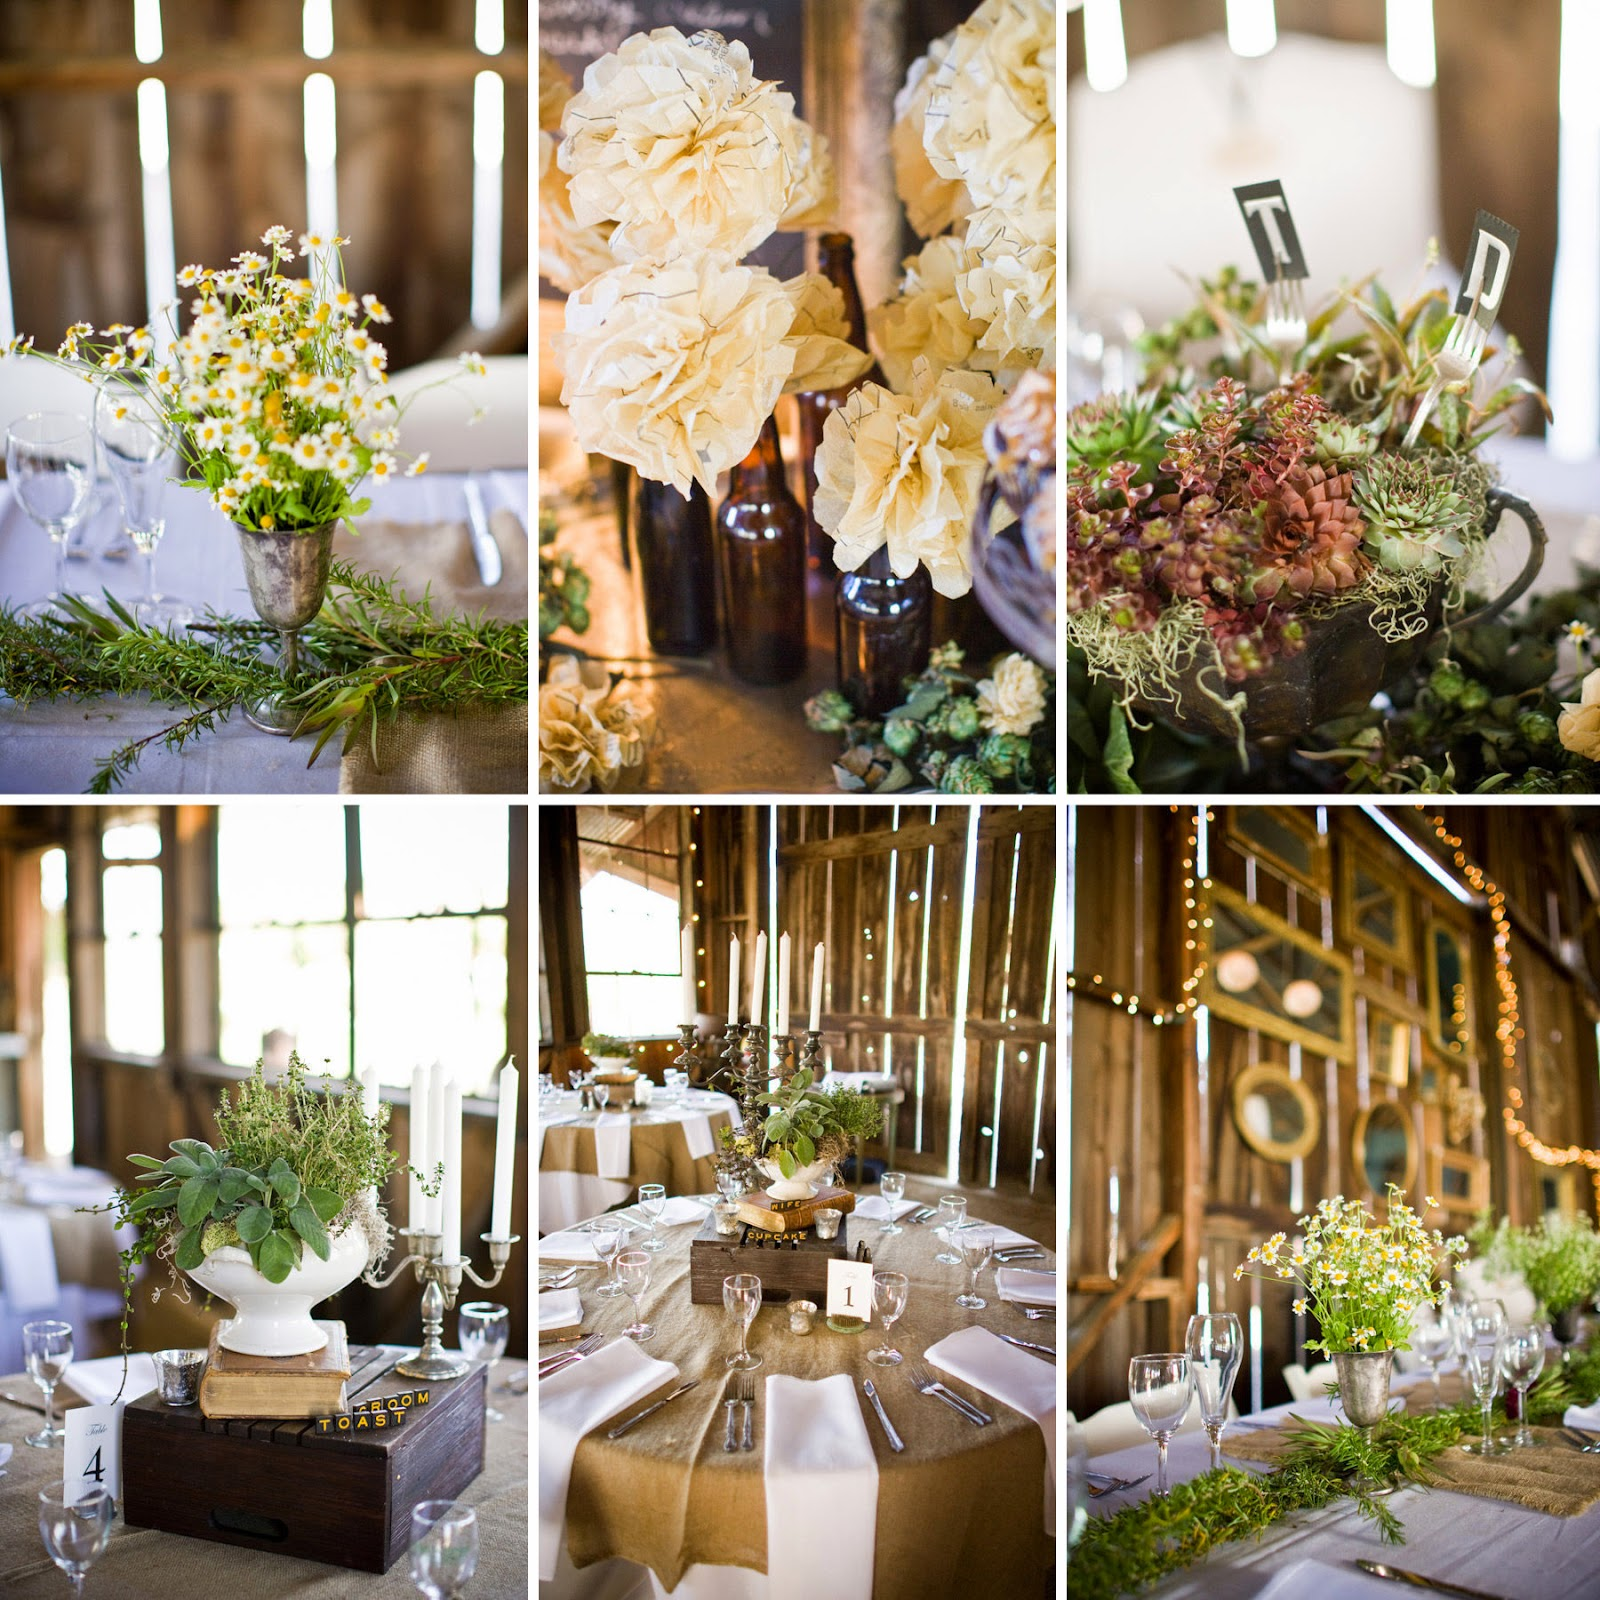 Wedding Party Decorations: Bling Brides: Country Weddings, Yee Haw! Country Centerpieces